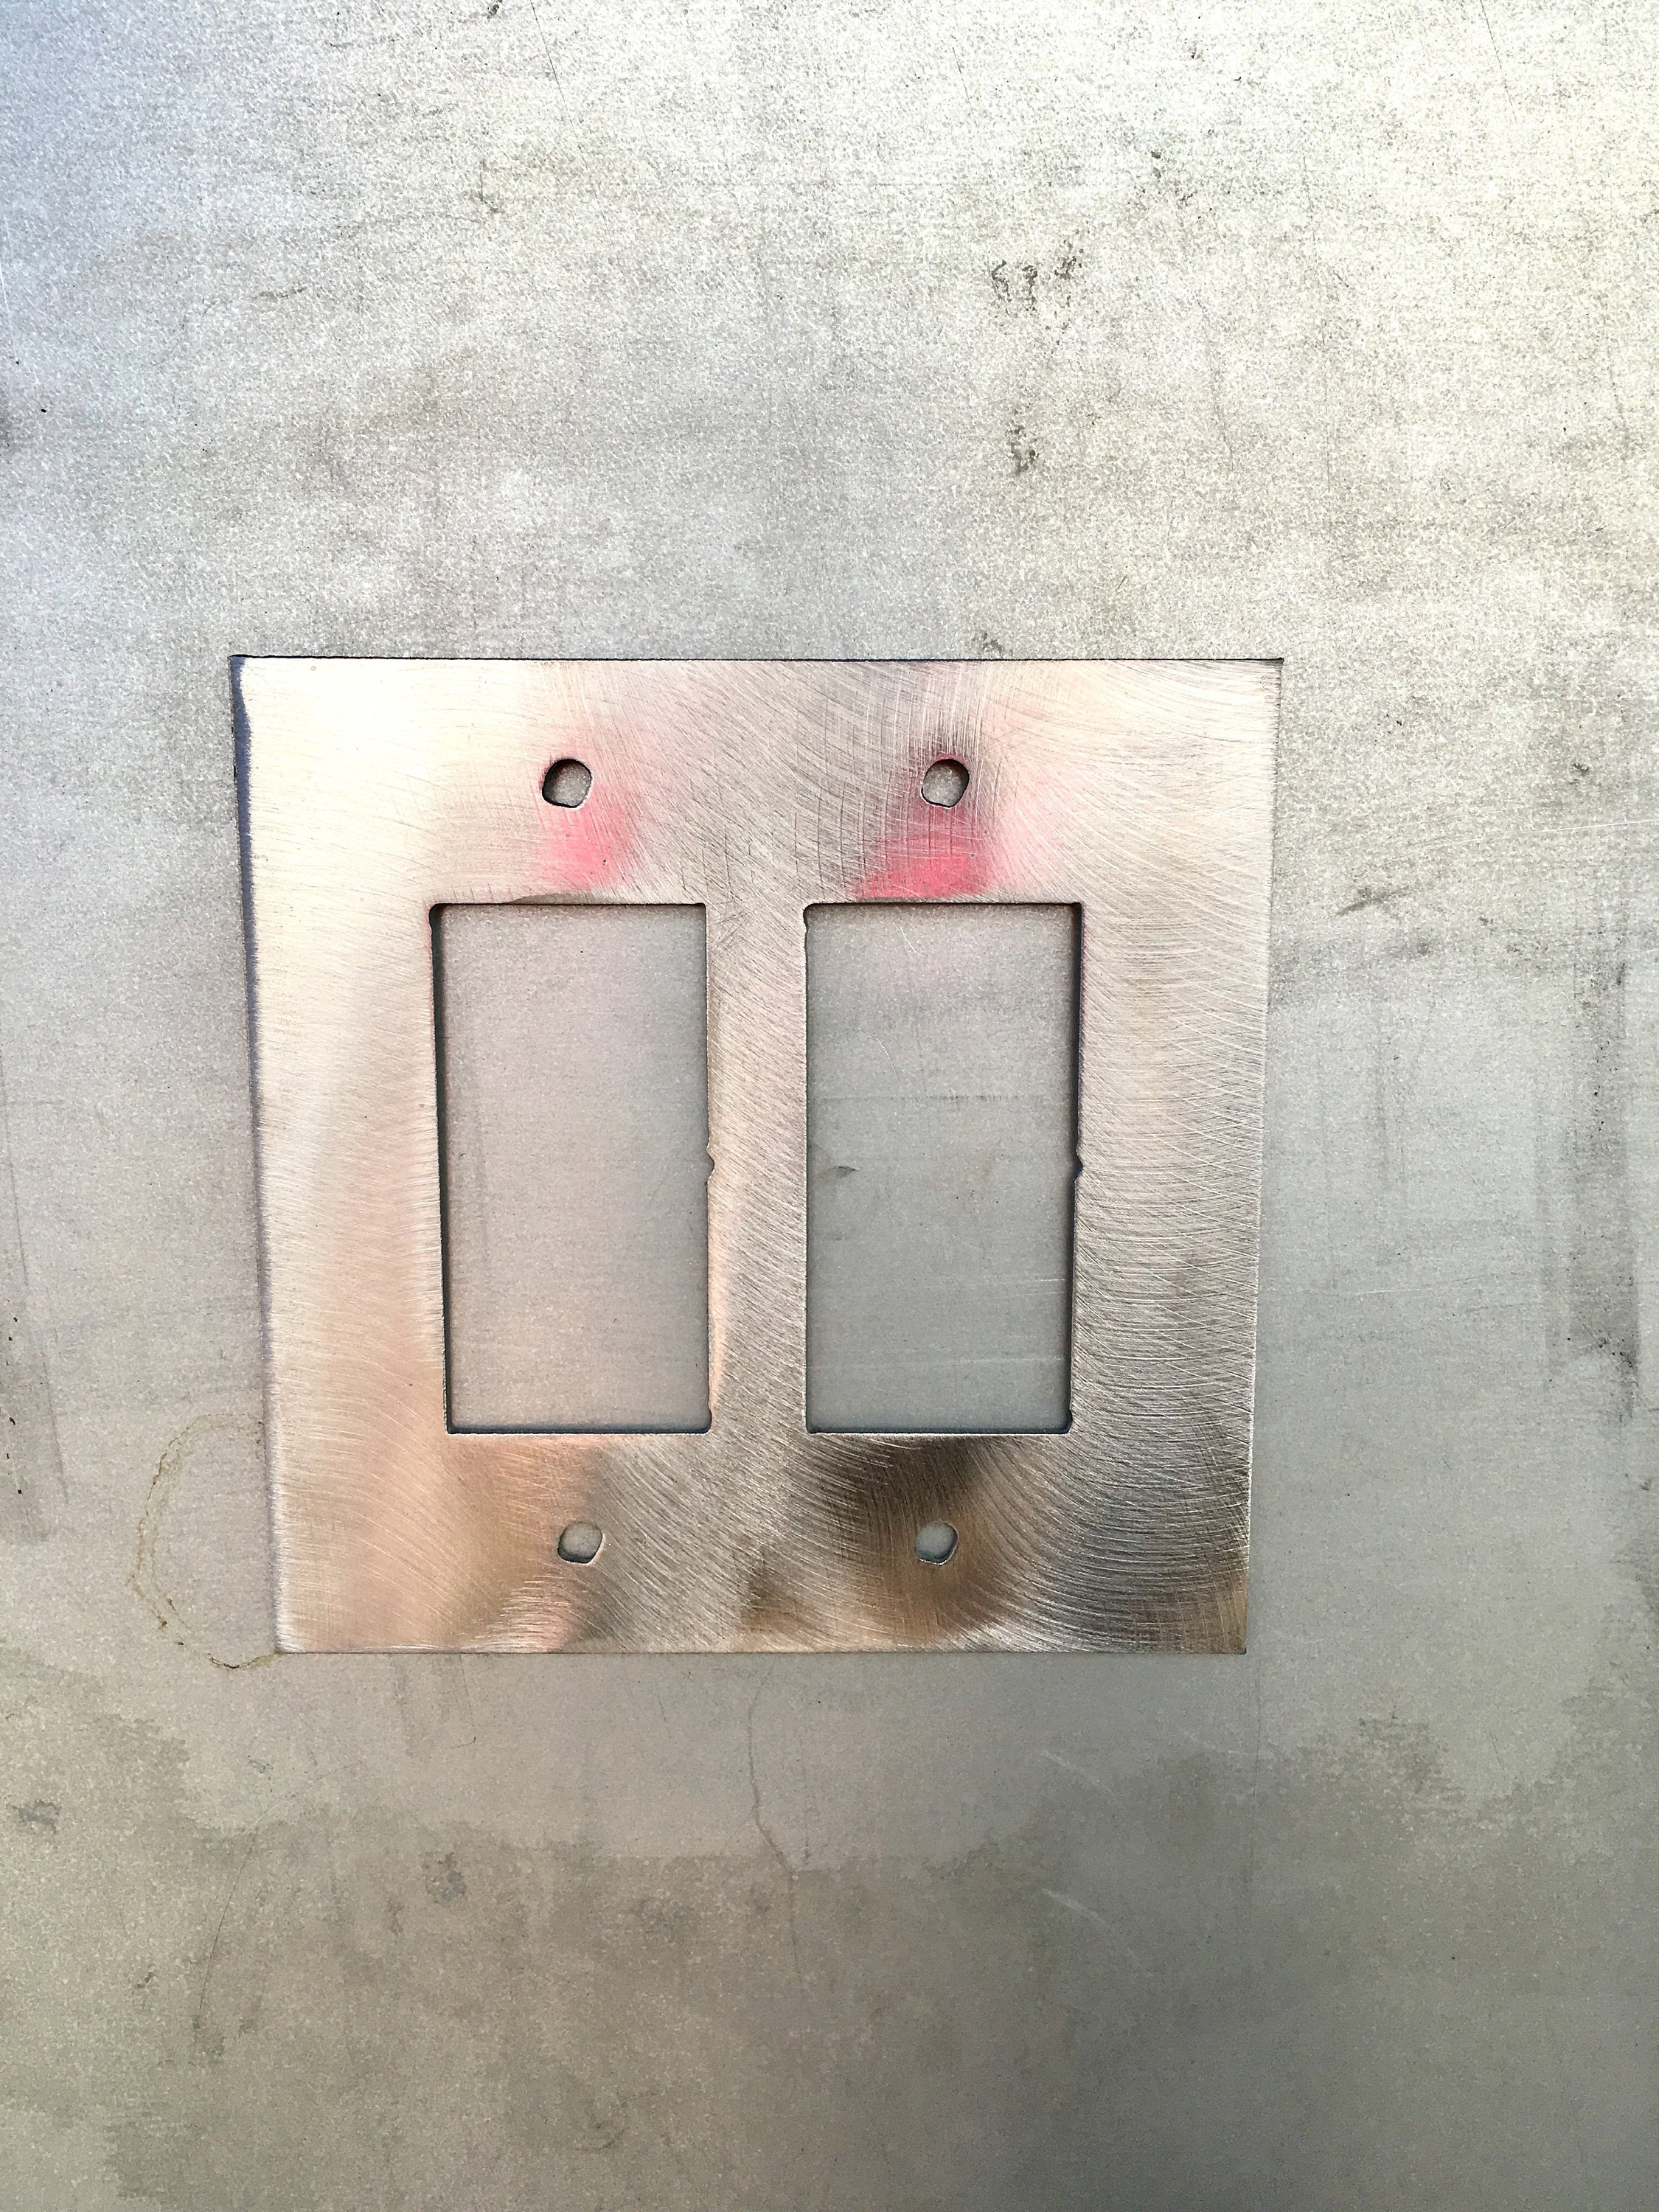 Buffalo Metal Switch Plate Cover/Outlet Cover/Rustic Lighting/Decorative Lighting/Unique Art/Custom Home Decor/Rustic Home Decor/Wallplates